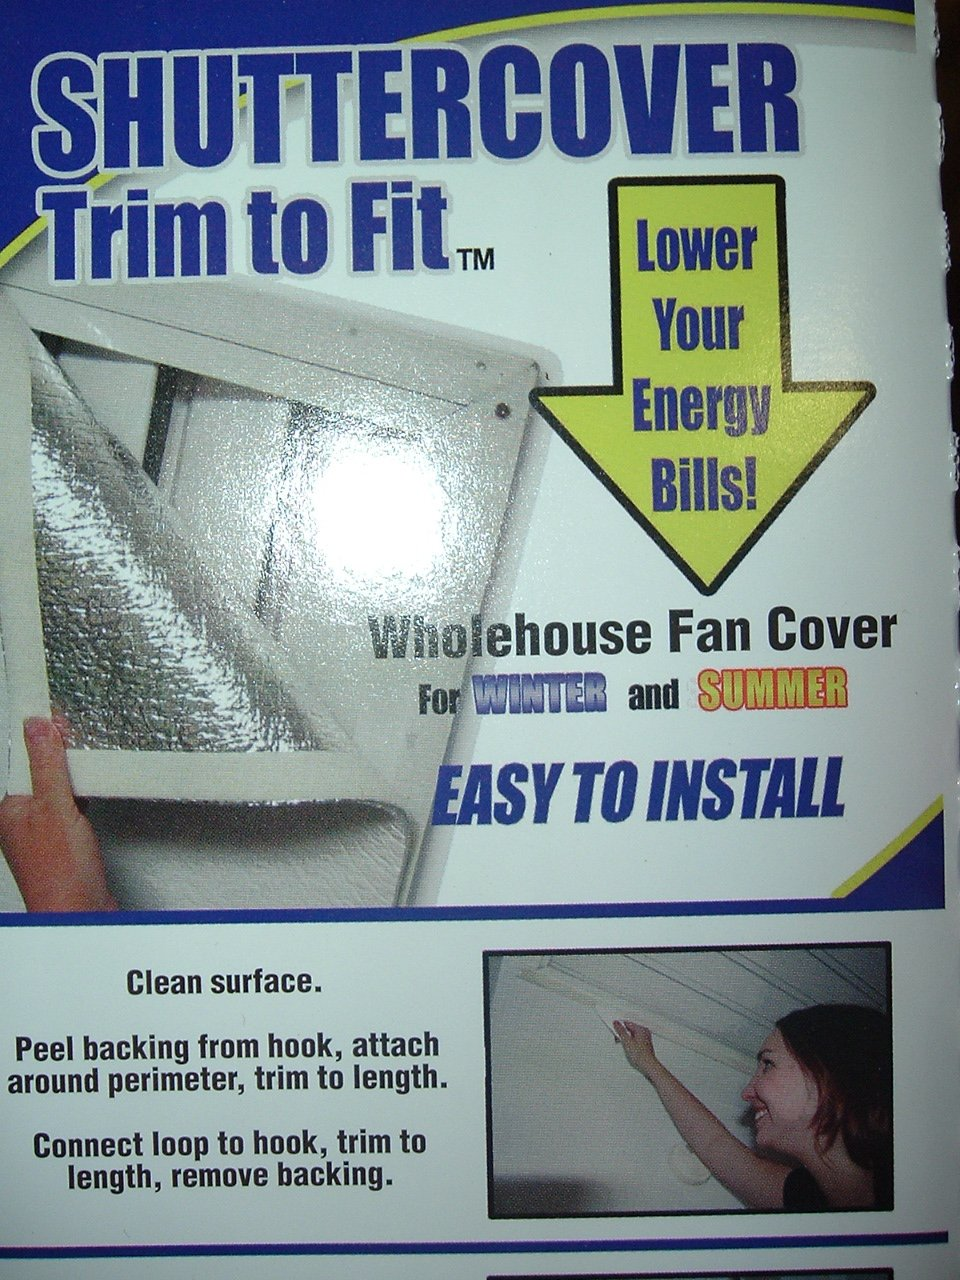 Shuttercover Trim To Fit Whole House Attic Fan Cover good